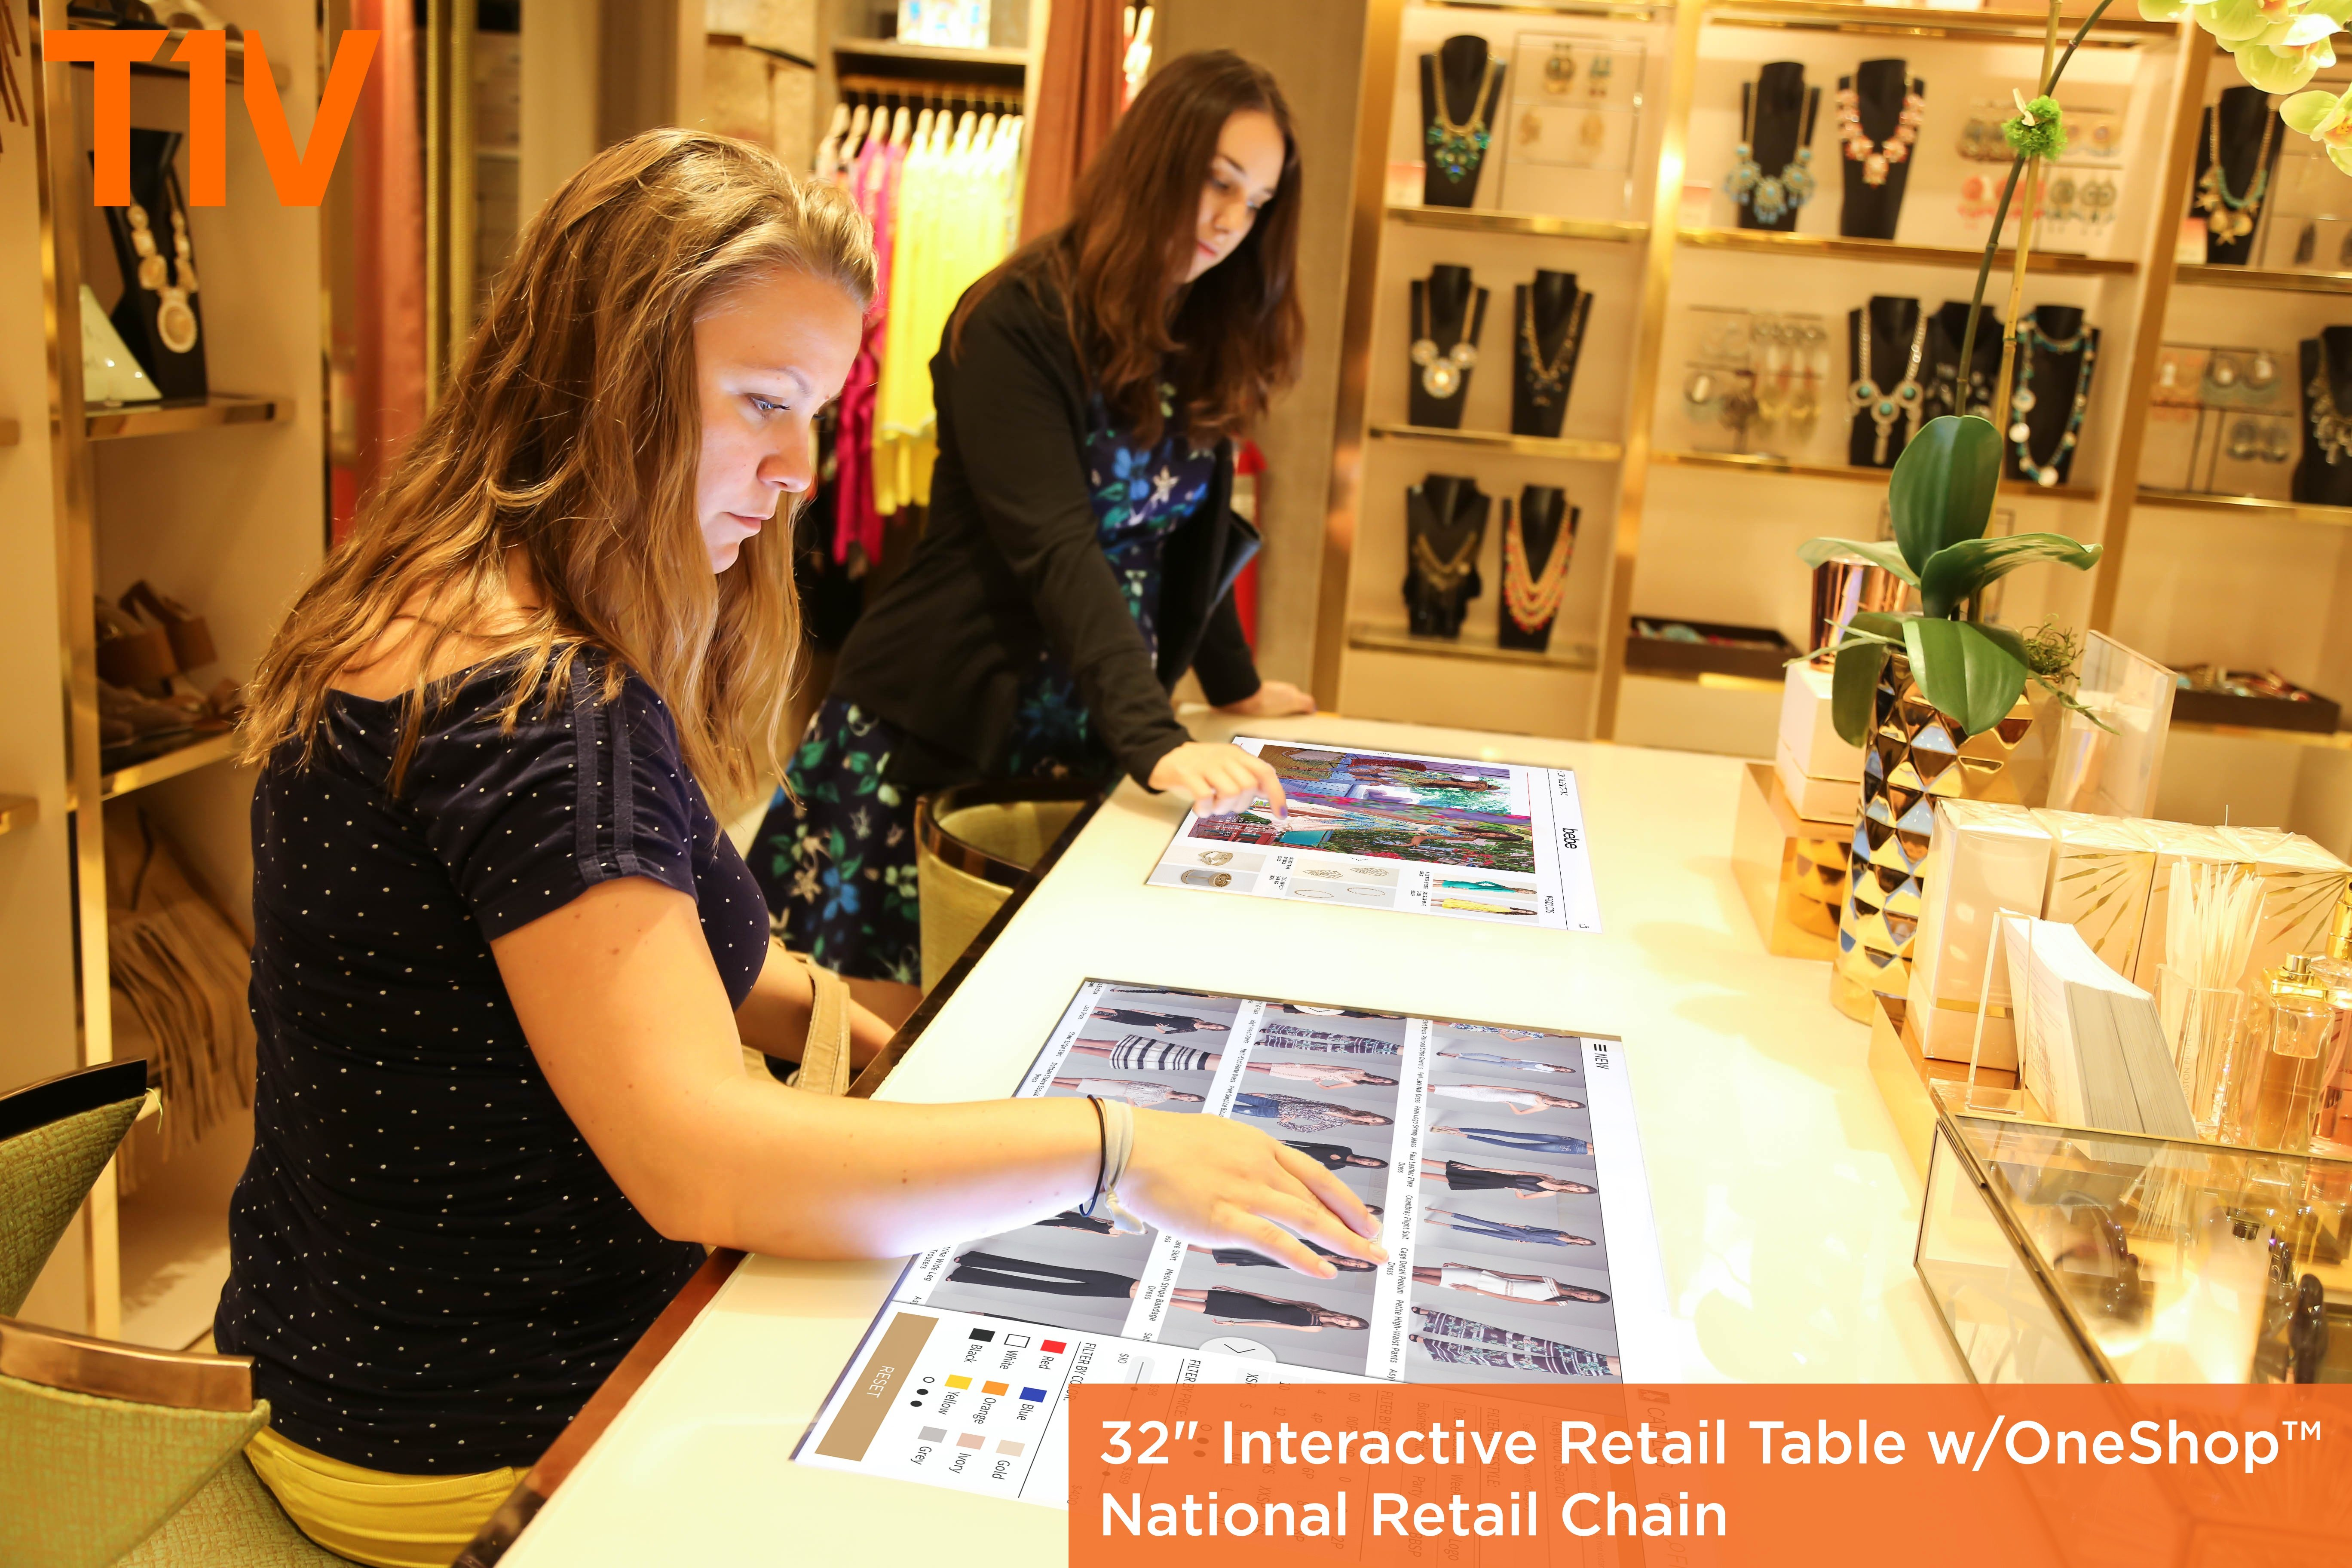 T1V_Interactive_Touchscreen_Retail_Table.jpg